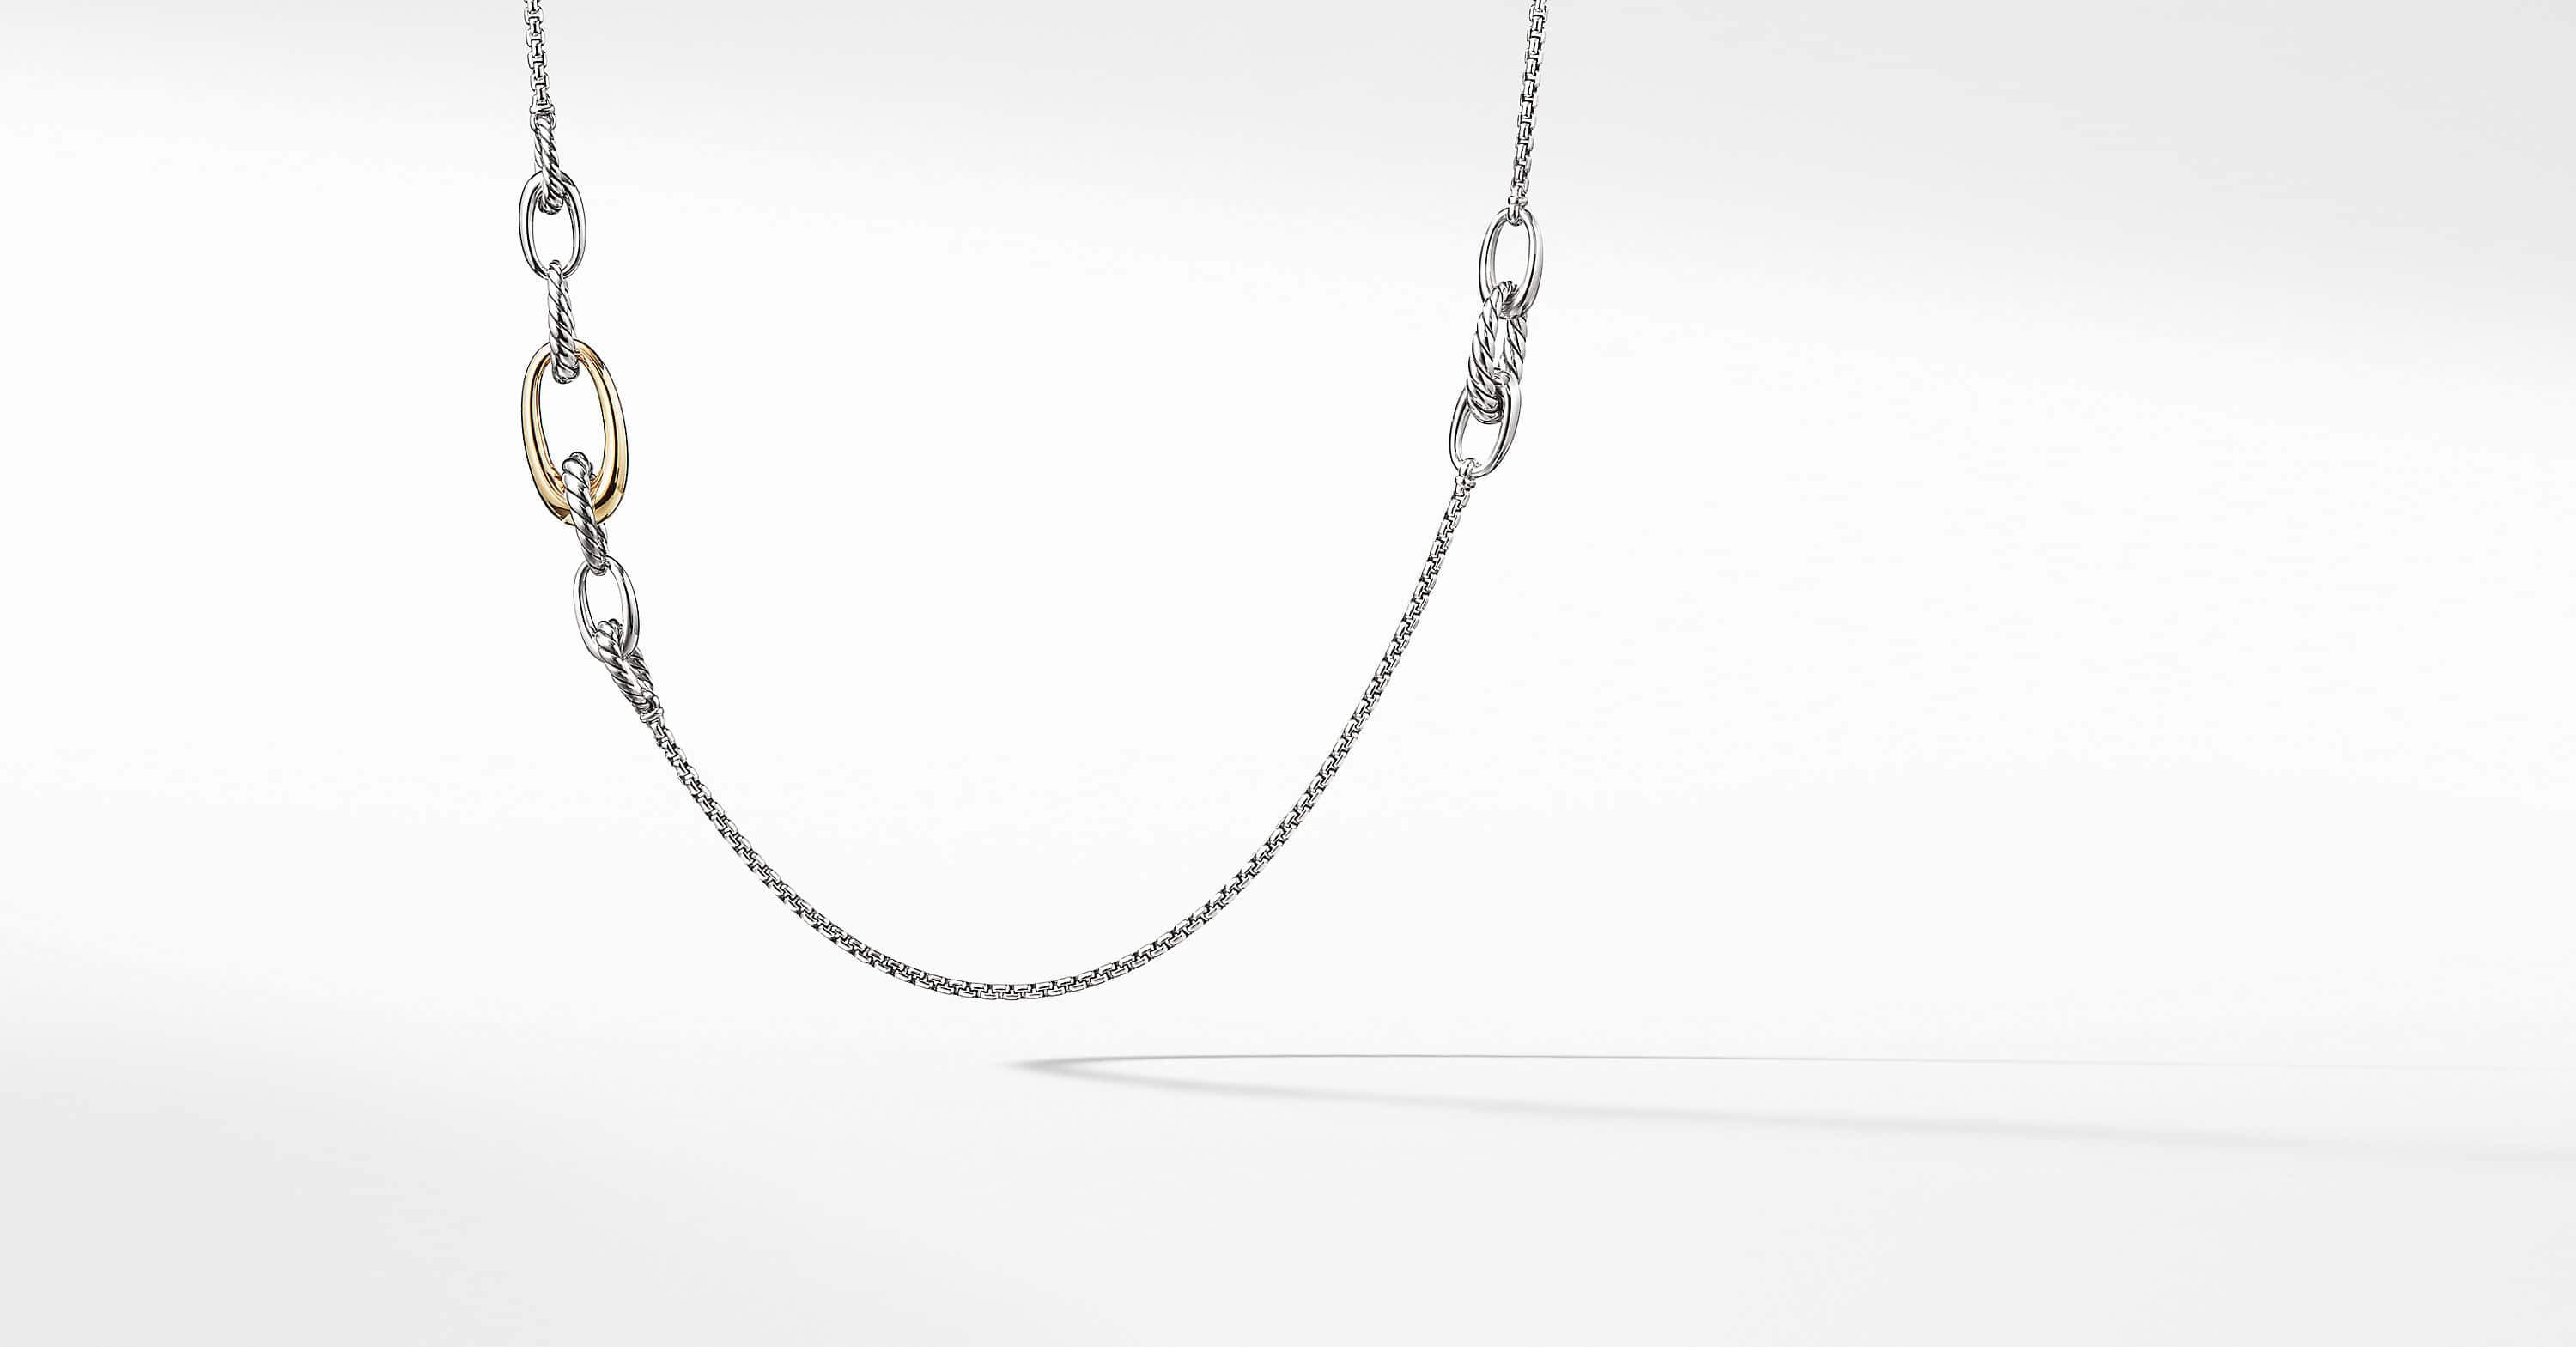 Pure Form Graduated Chain Necklace with 18K Yellow Gold